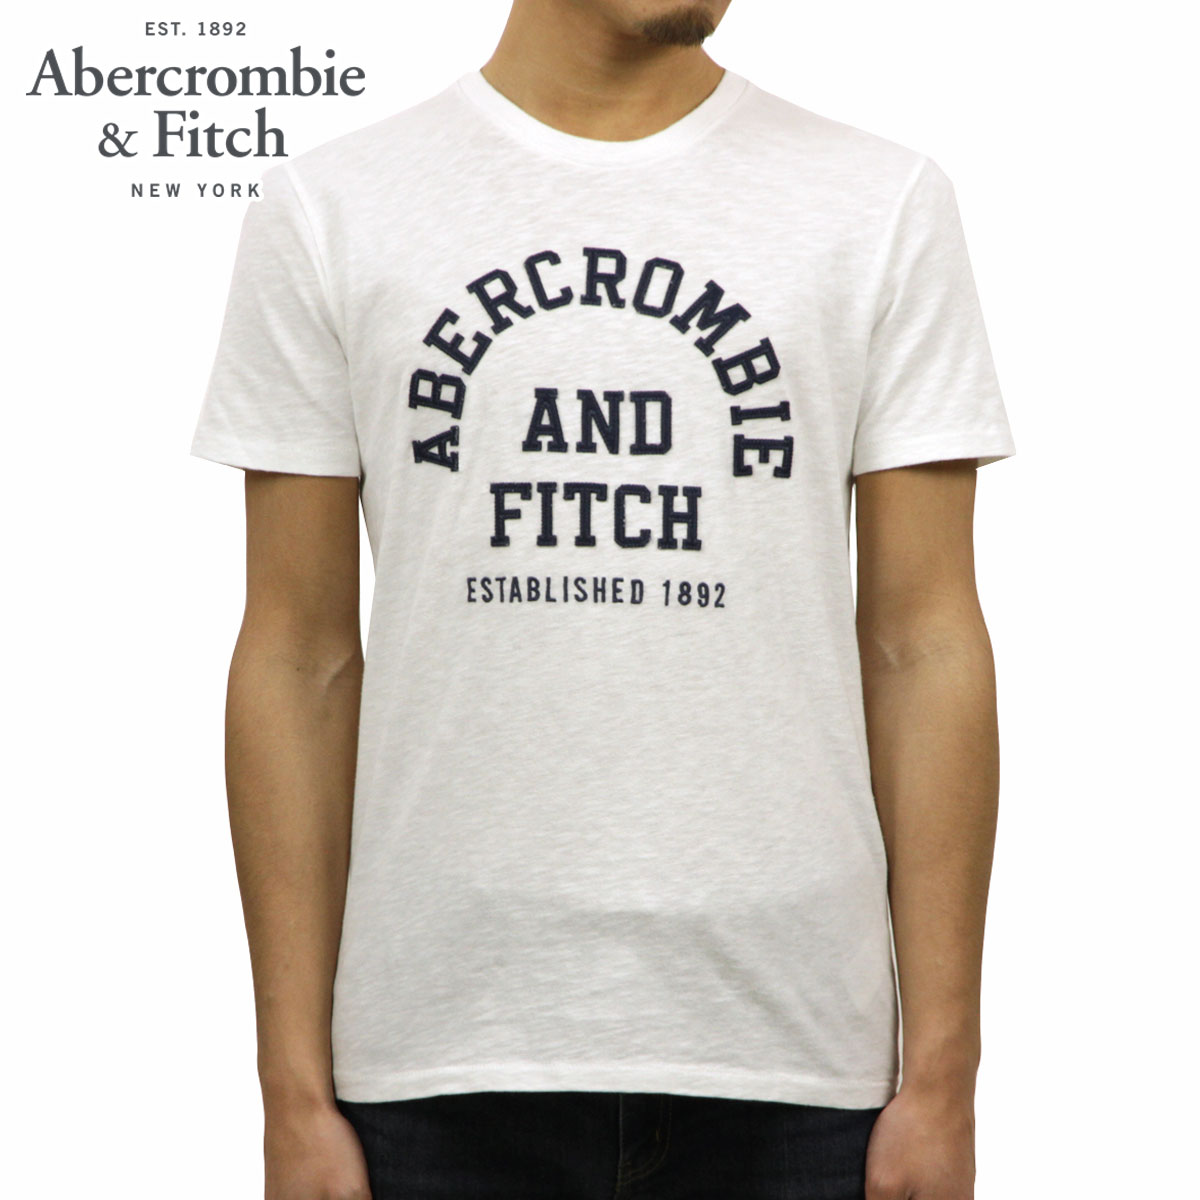 c2a53cf4 ABBA black Abercrombie & Fitch regular article men crew neck logo short  sleeves T- ...